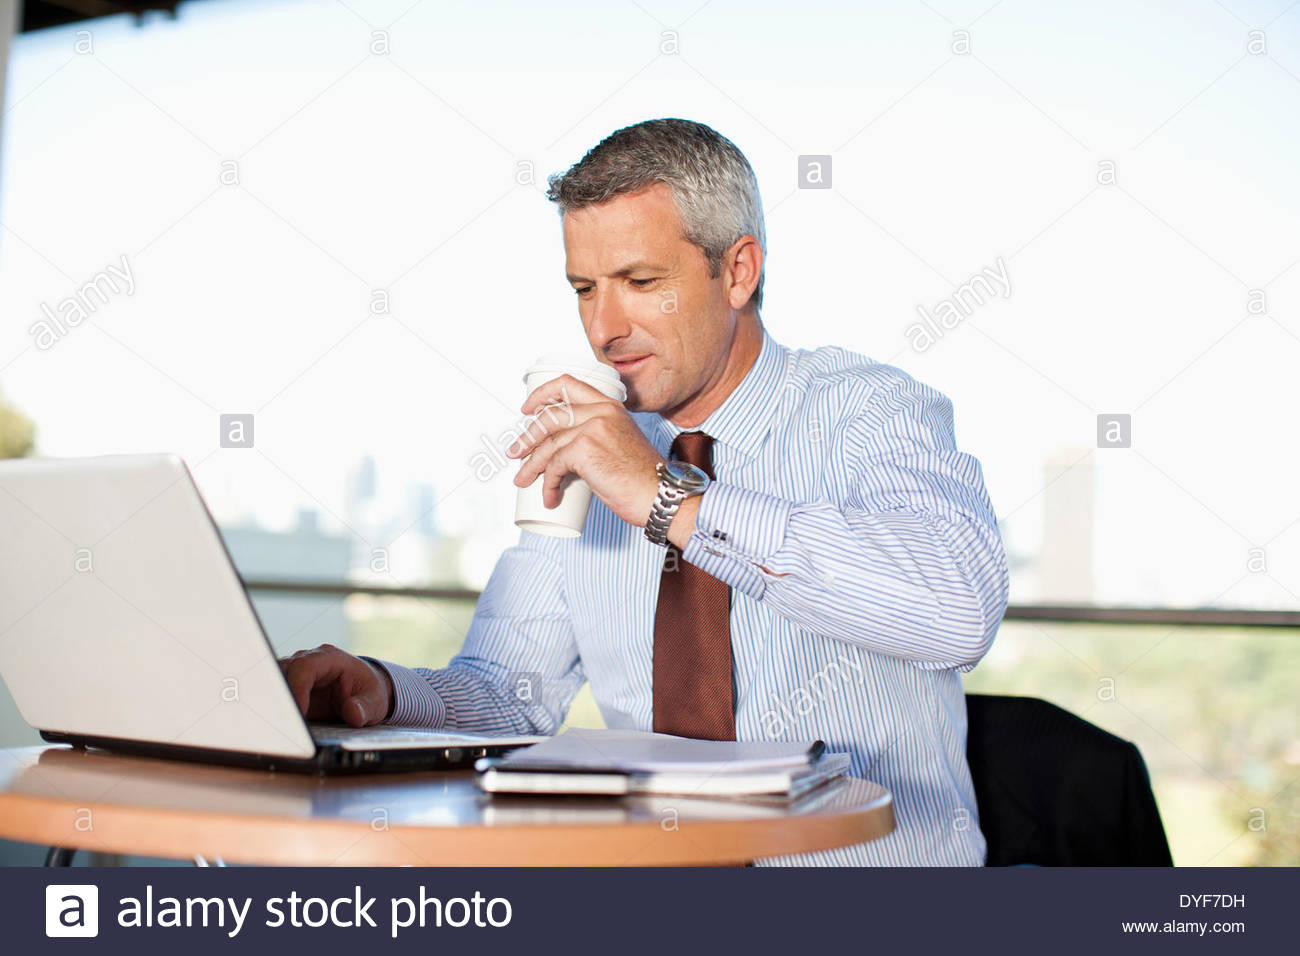 Businessman using lapto pand drinking coffee in cafe - Stock Image